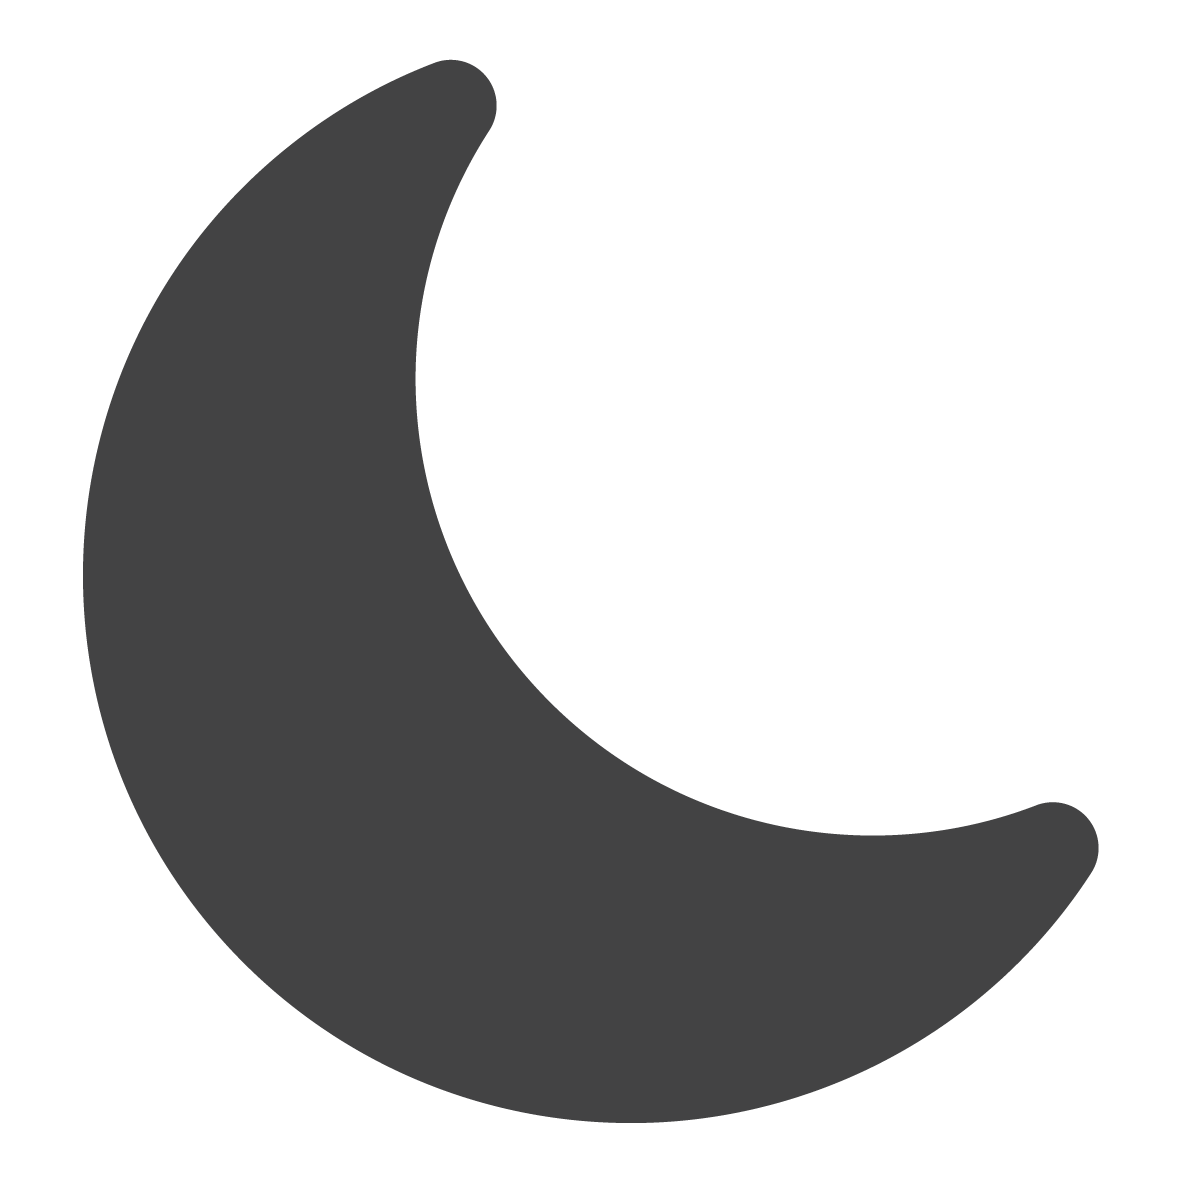 https://cdn11.bigcommerce.com/s-r6sctuqw12/product_images/uploaded_images/moon-sleep.png?t=1571181038